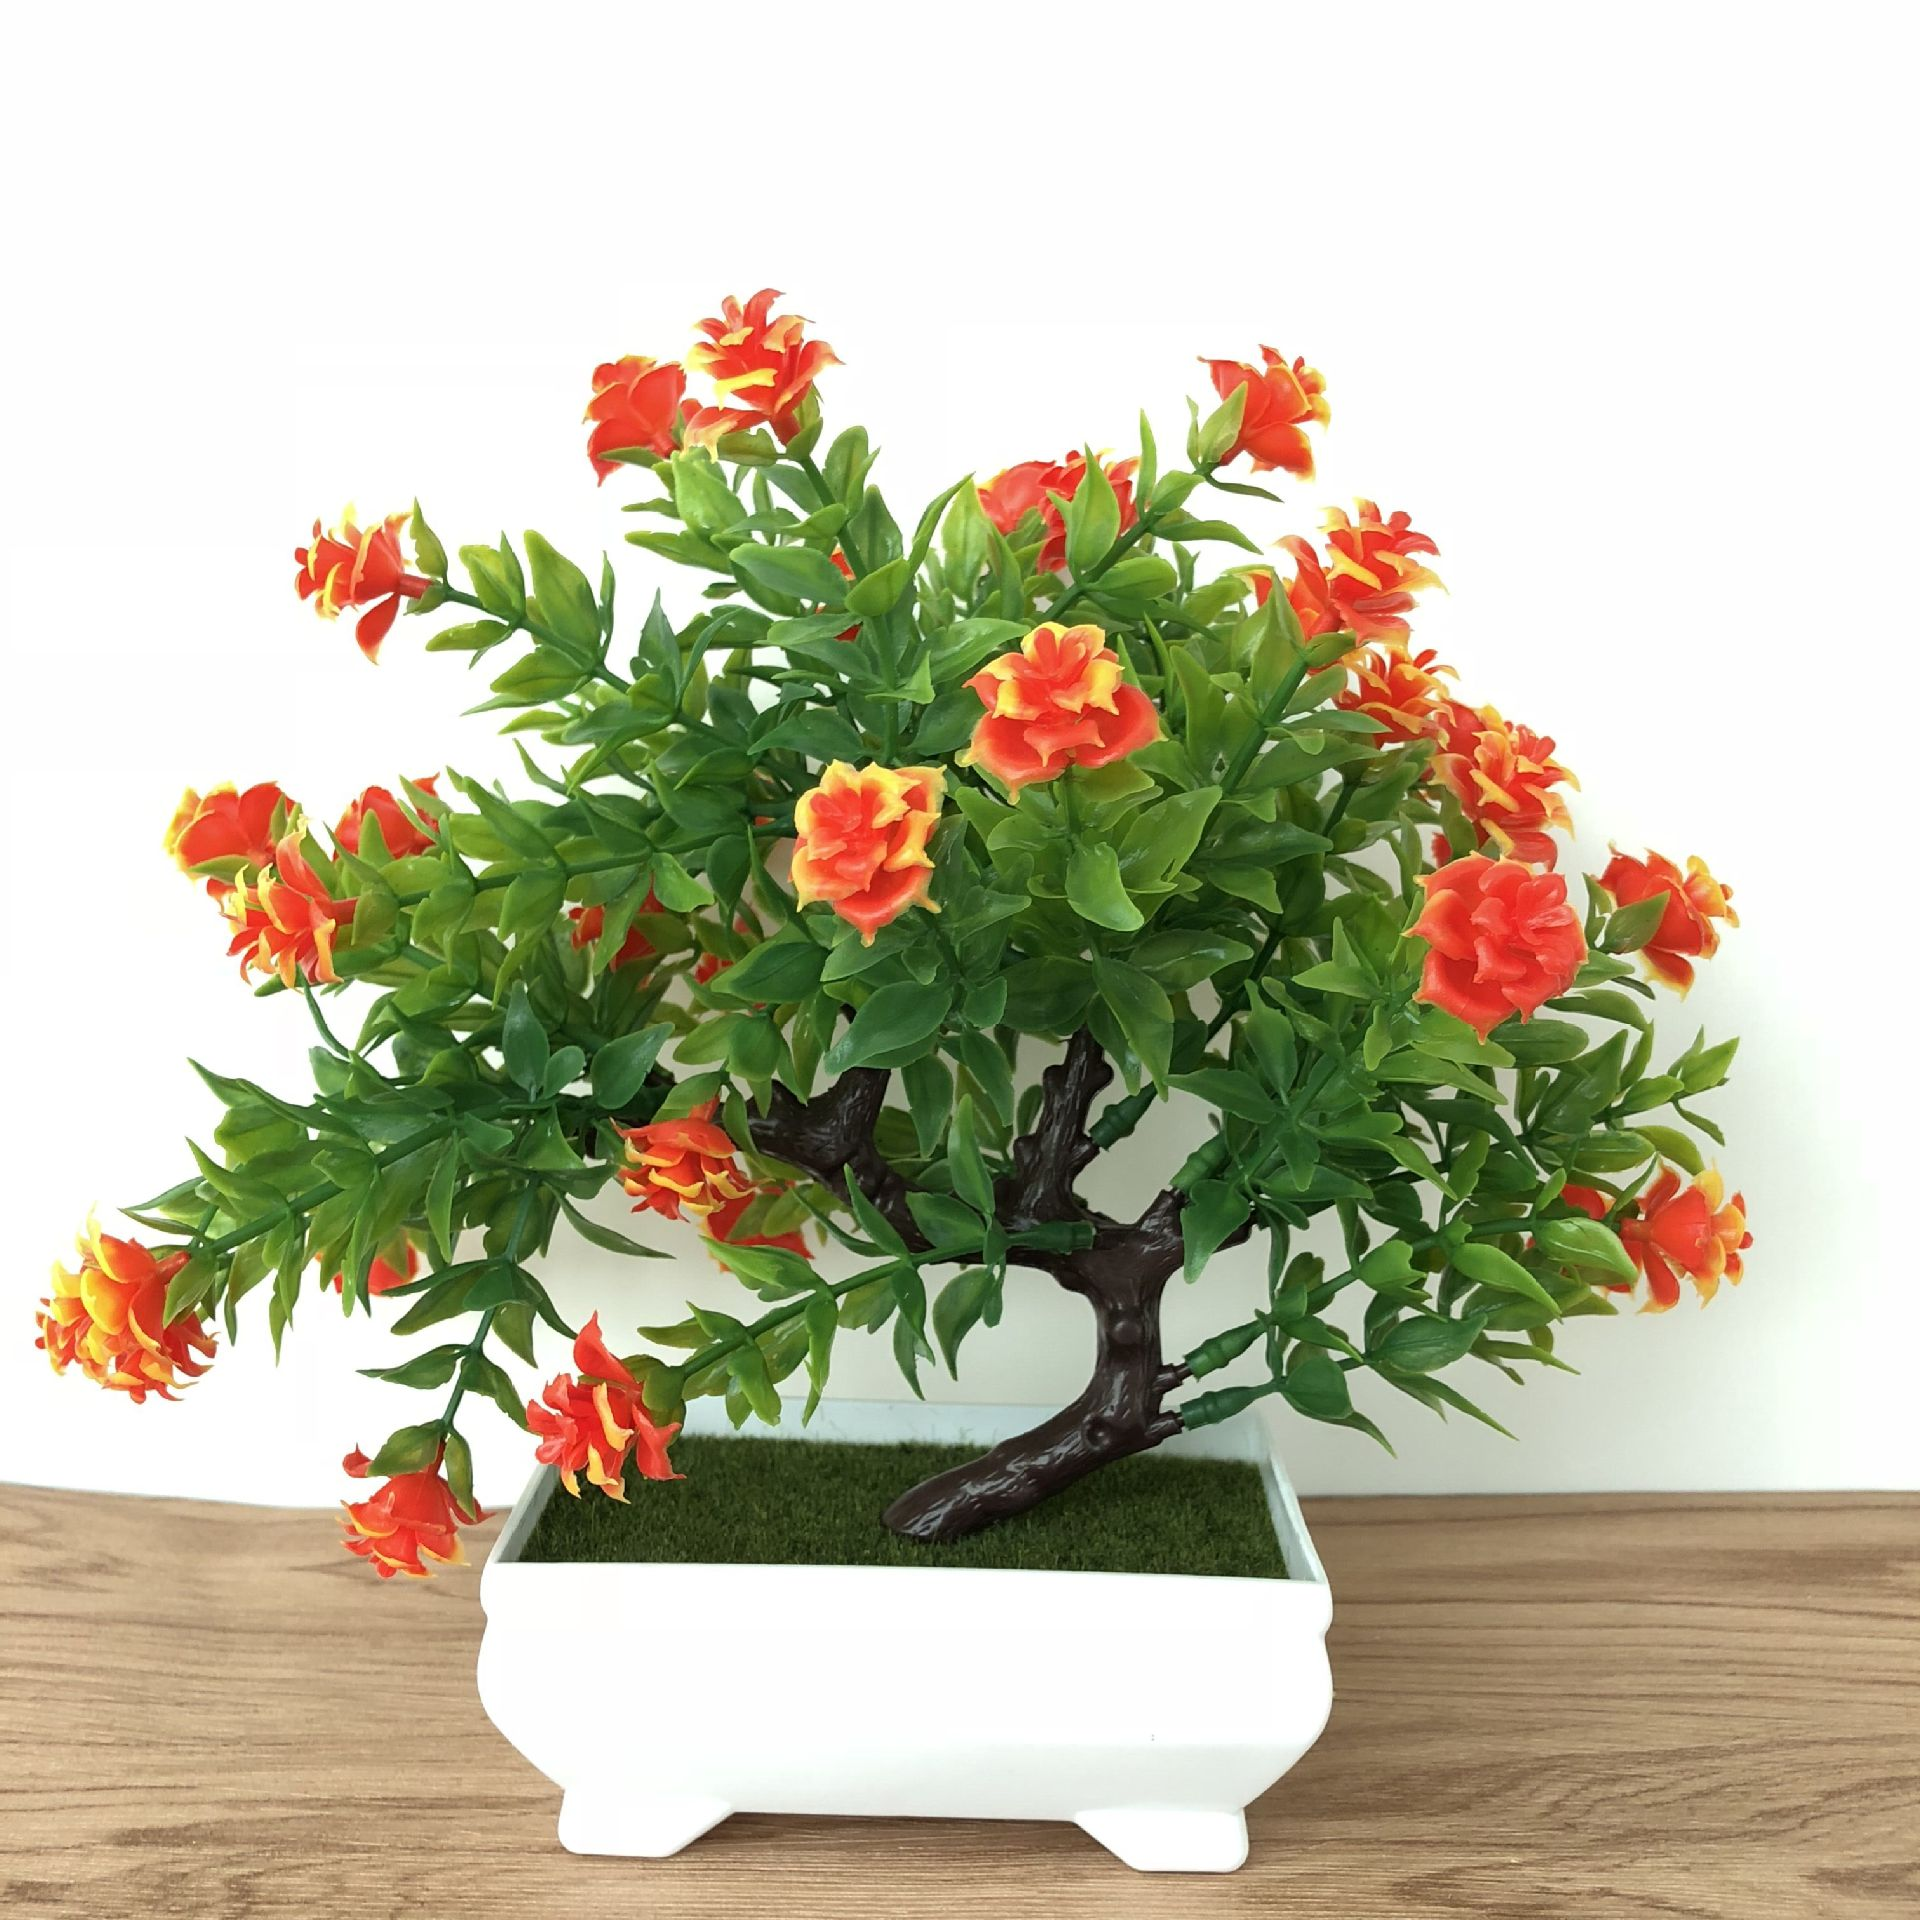 Fake Artificial Plant Plastic Bonsai Flower Wedding Office Home Decor Simulated Potted Plant Tree Flower Ornament Home Decoratio